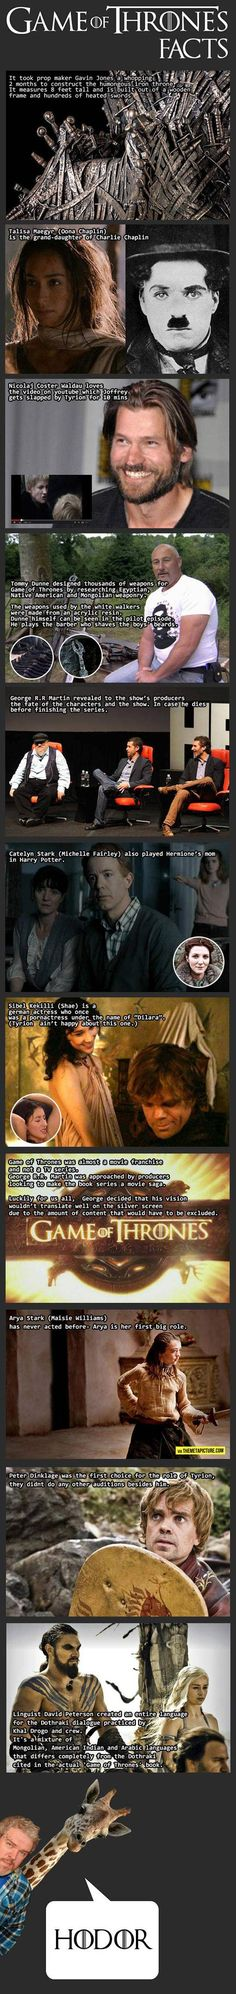 Some interesting Game of Thrones facts...